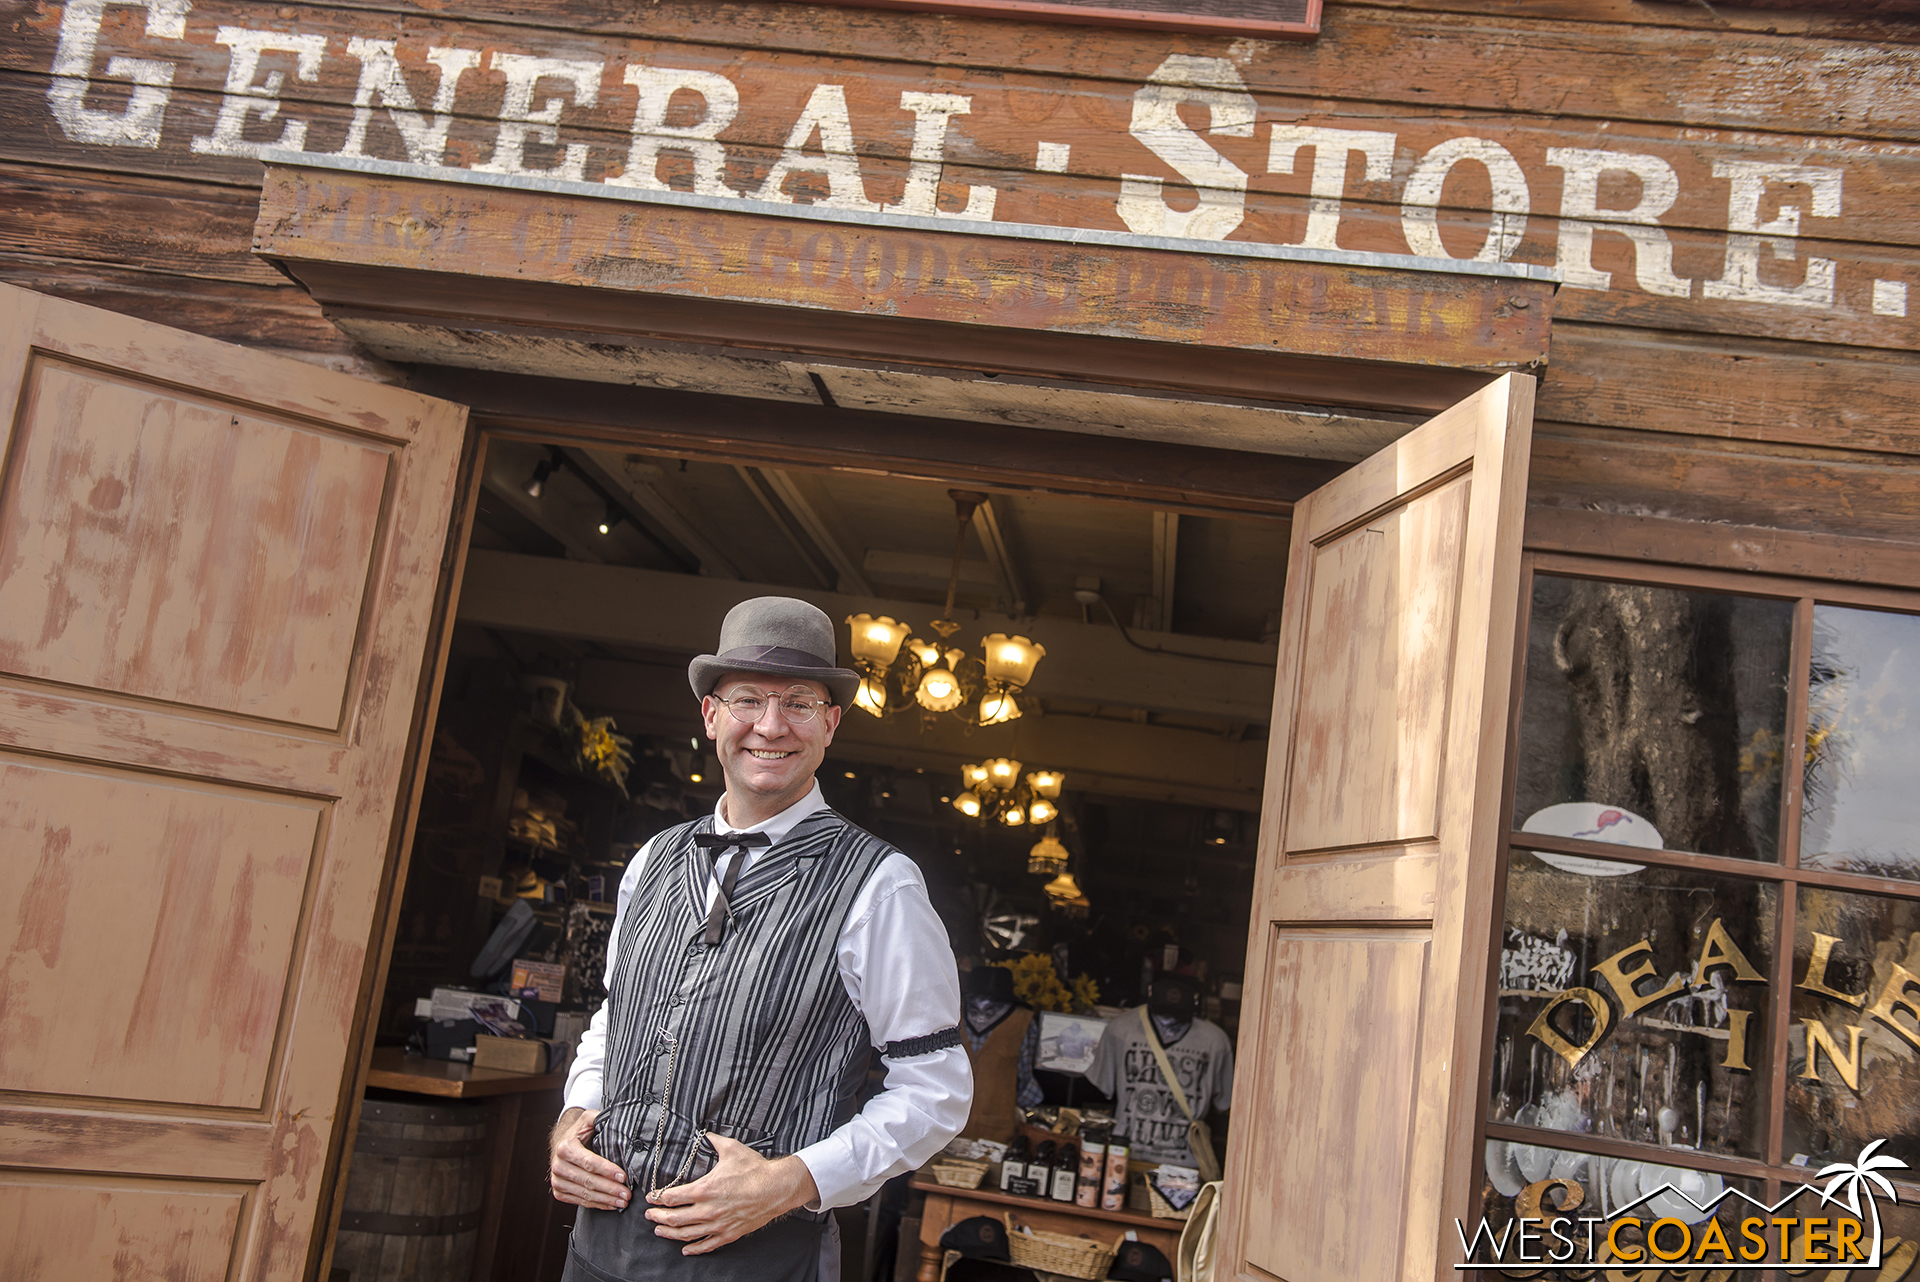 Colonel Clem Potter, a new character this year, has opened up the General Store for Calico's supply needs.